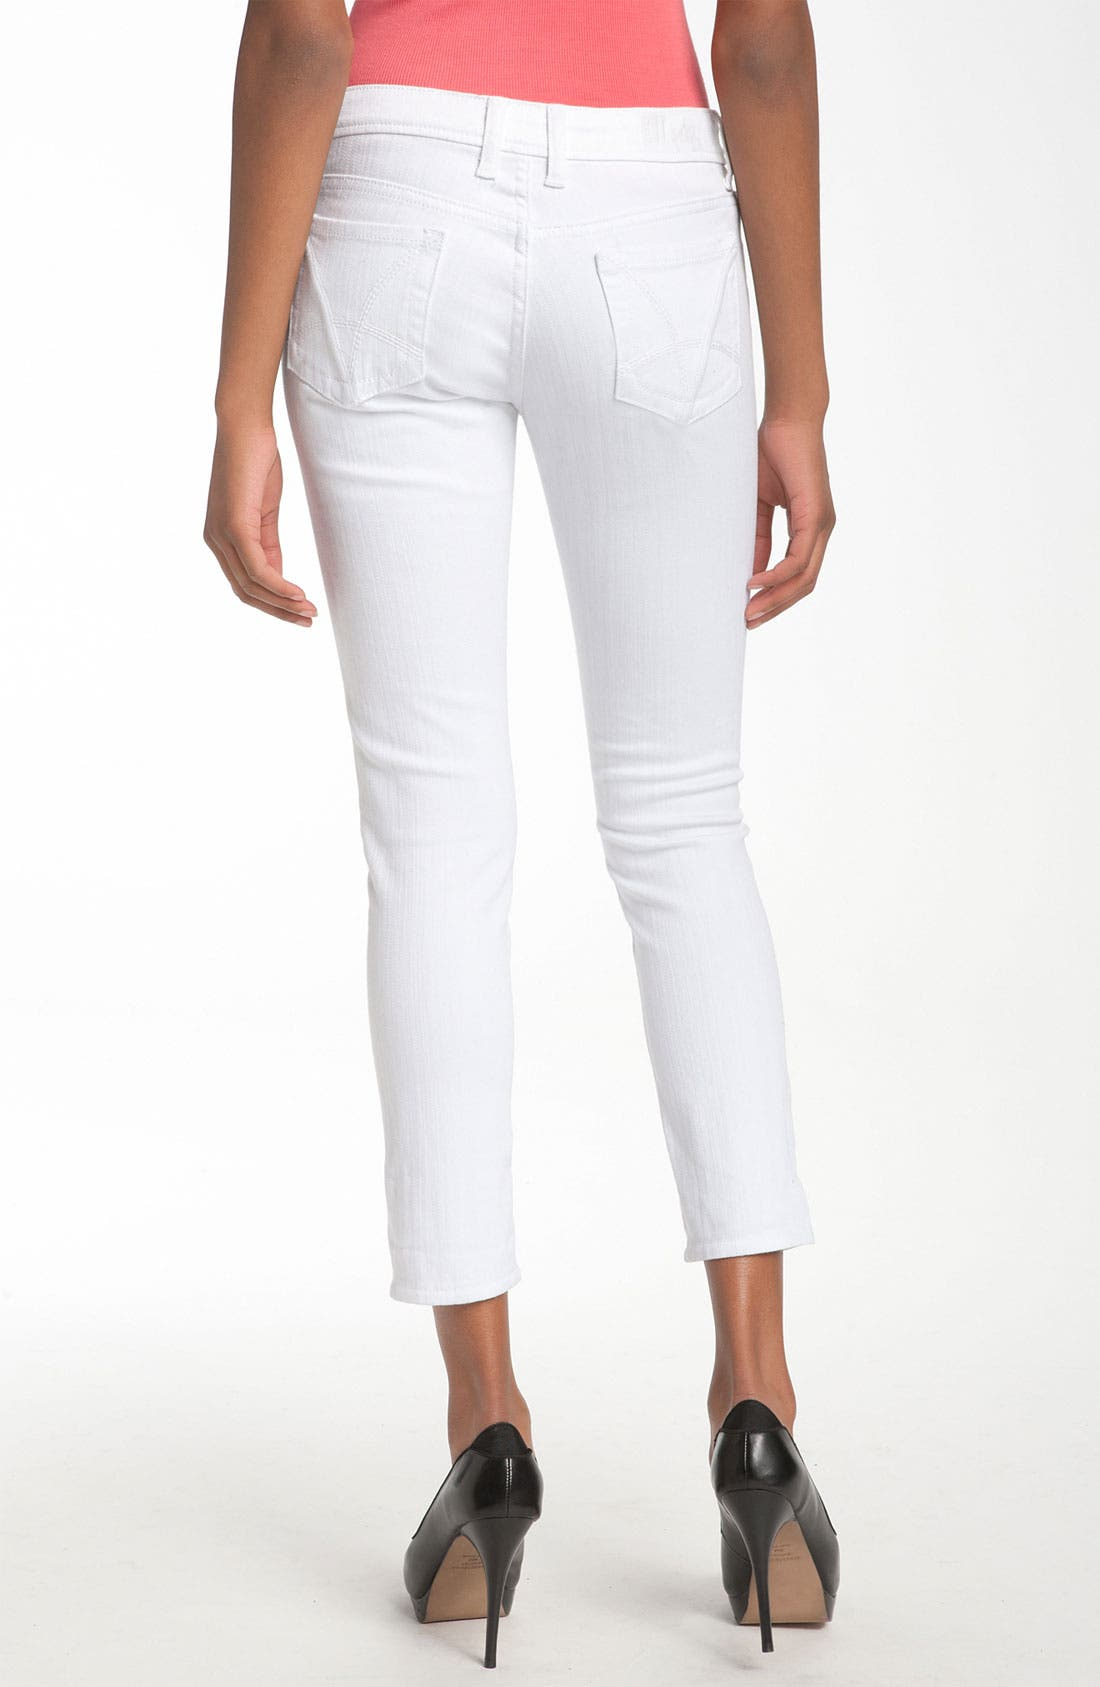 Main Image - KUT from the Kloth 'Catherine' Slim Boyfriend Jeans (White Wash)